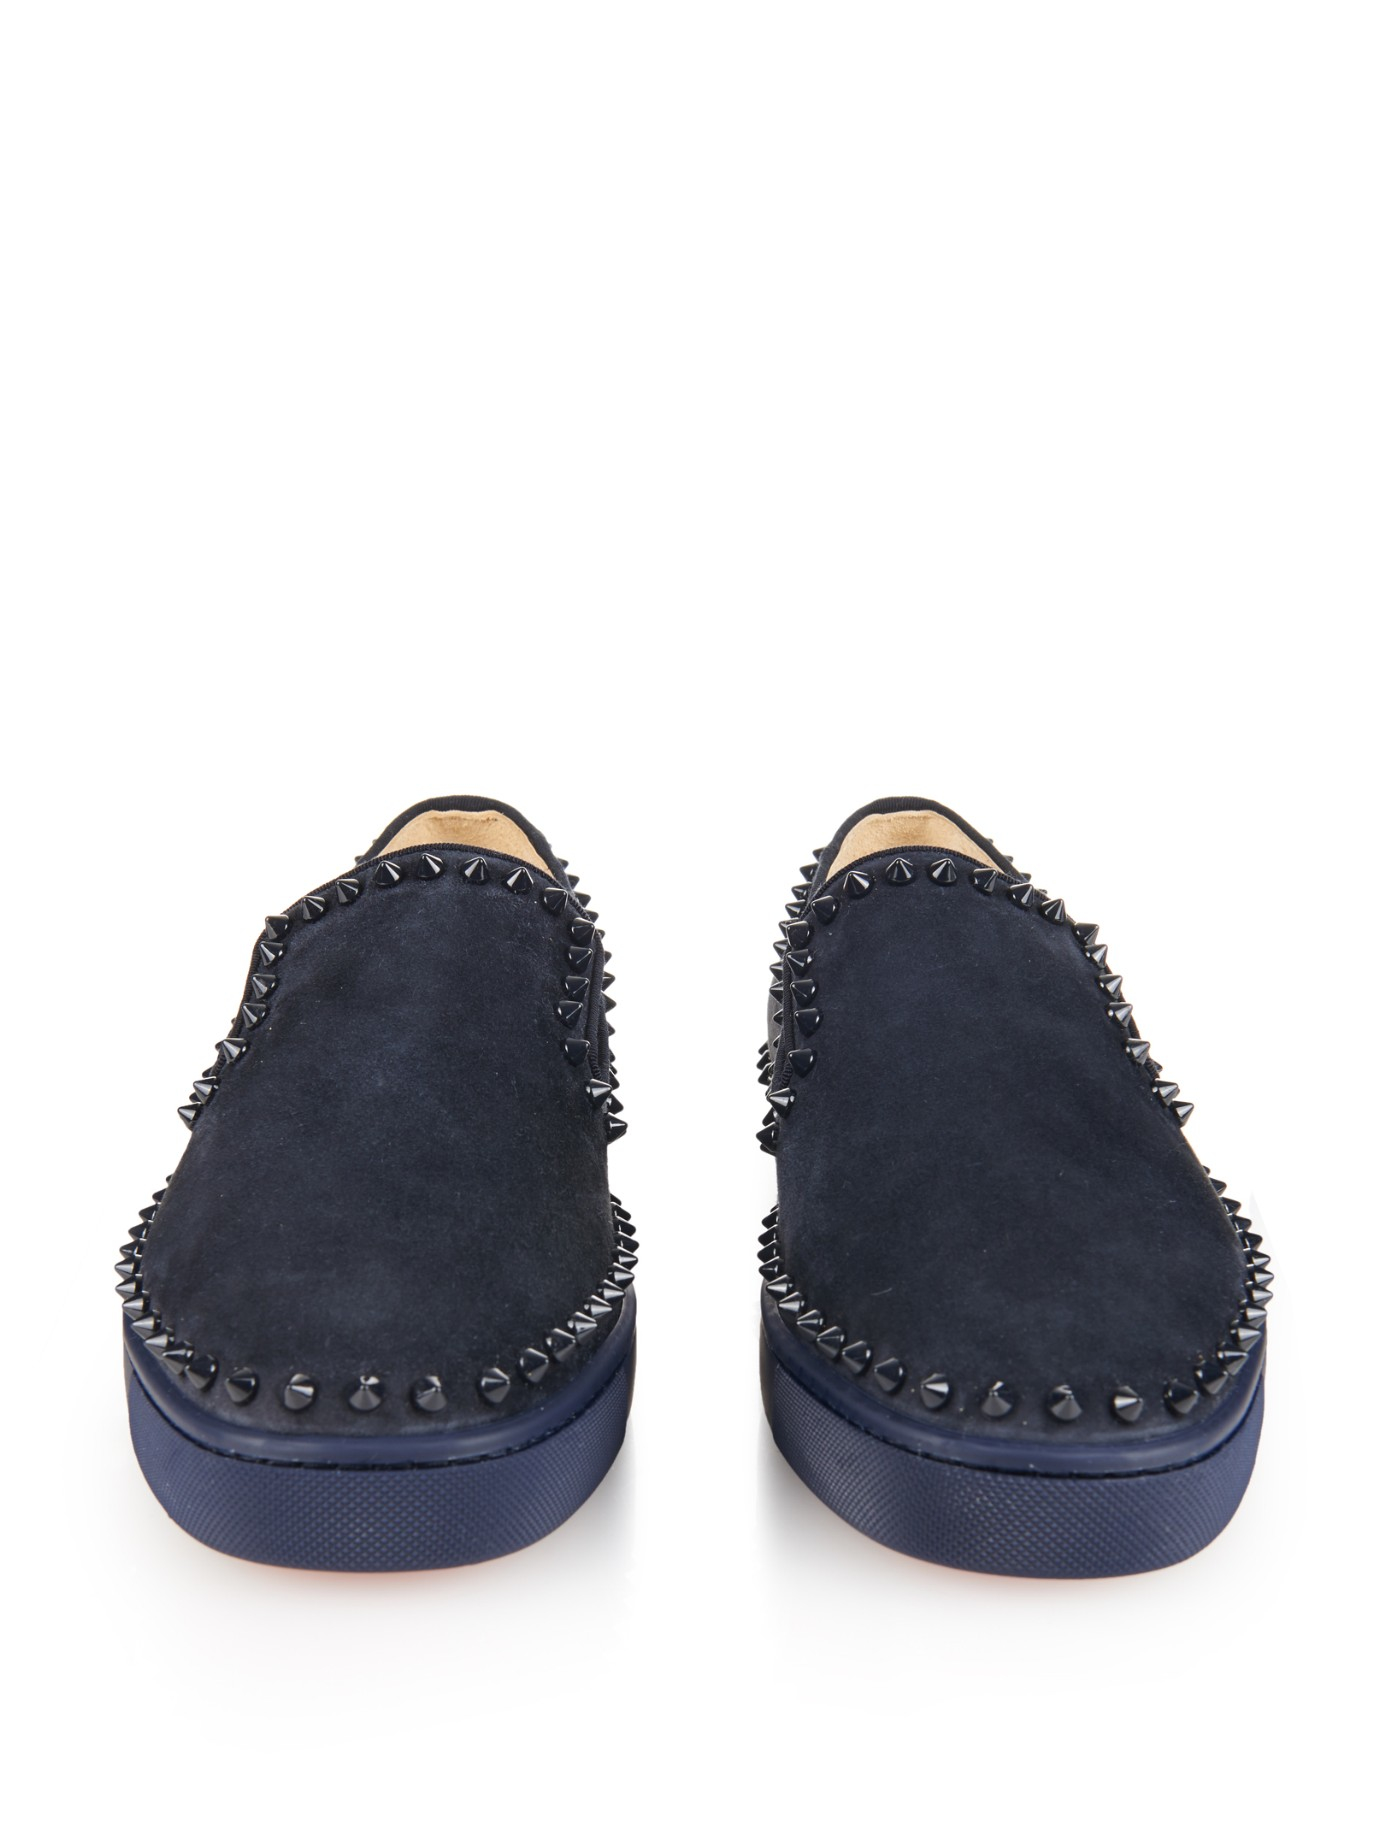 christian louboutin leather round-toe slip-on Pik Boat sneakers ...